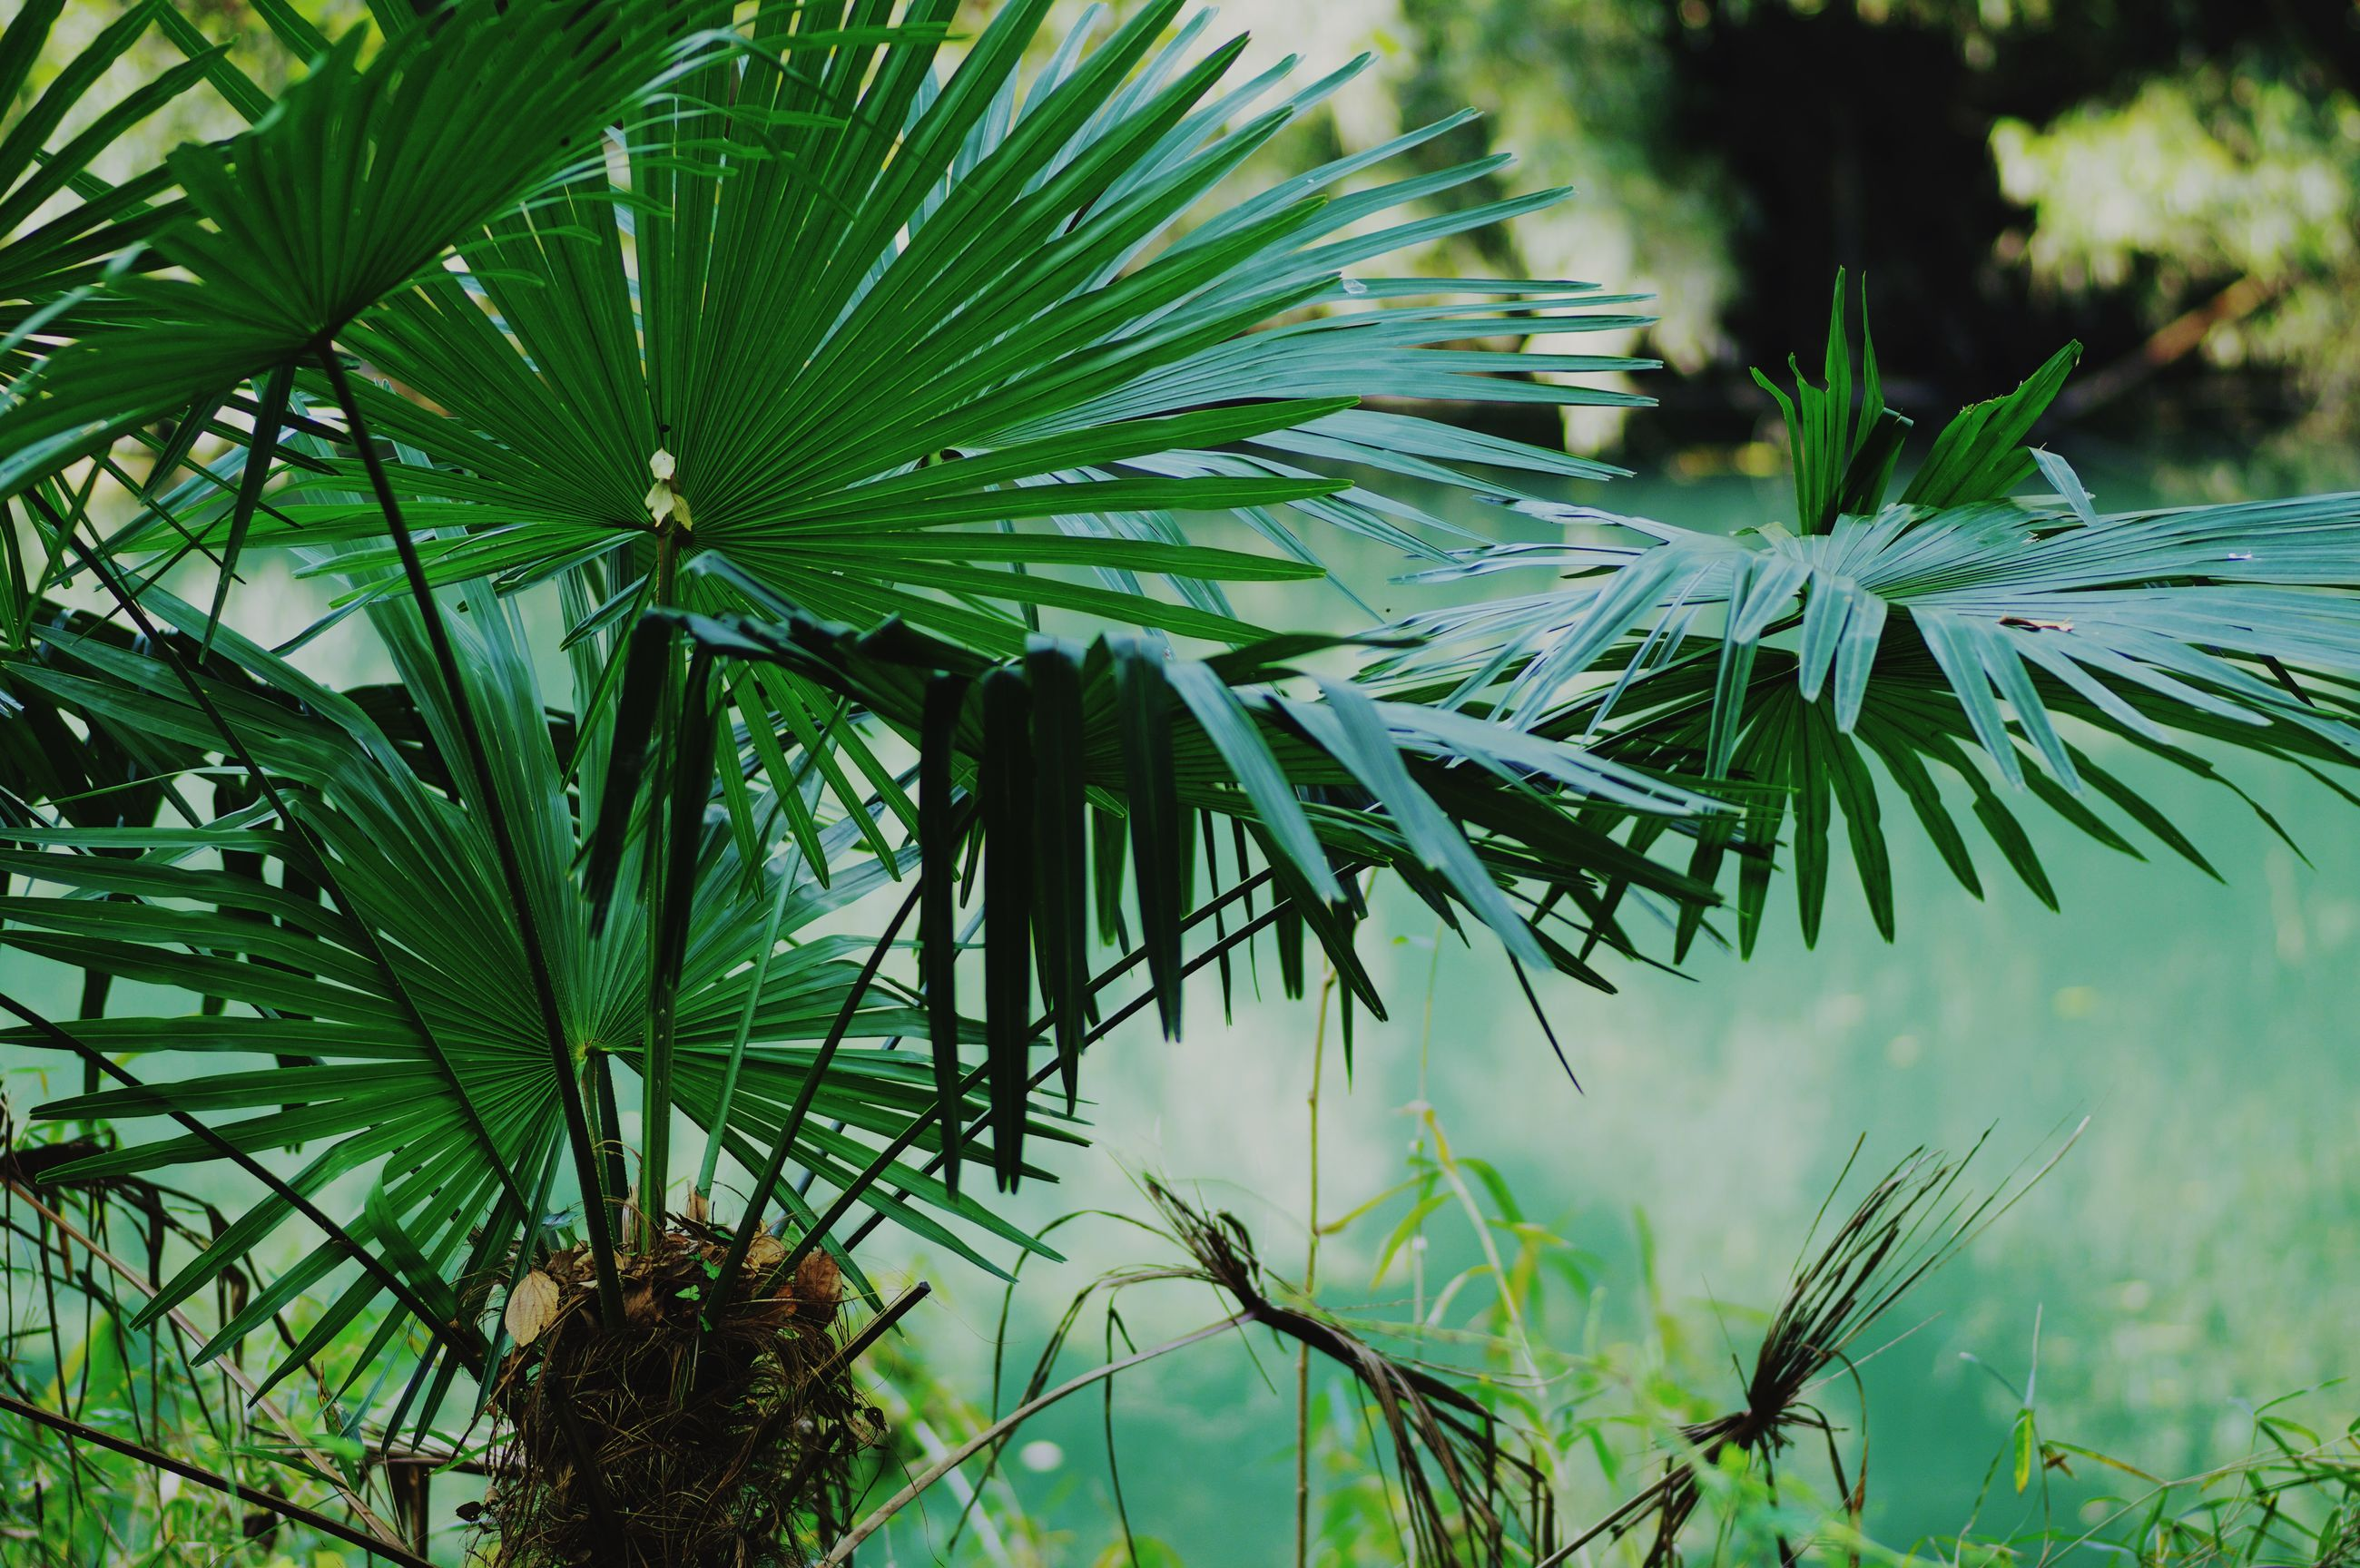 CLOSE-UP OF PLANT WITH PINE TREE